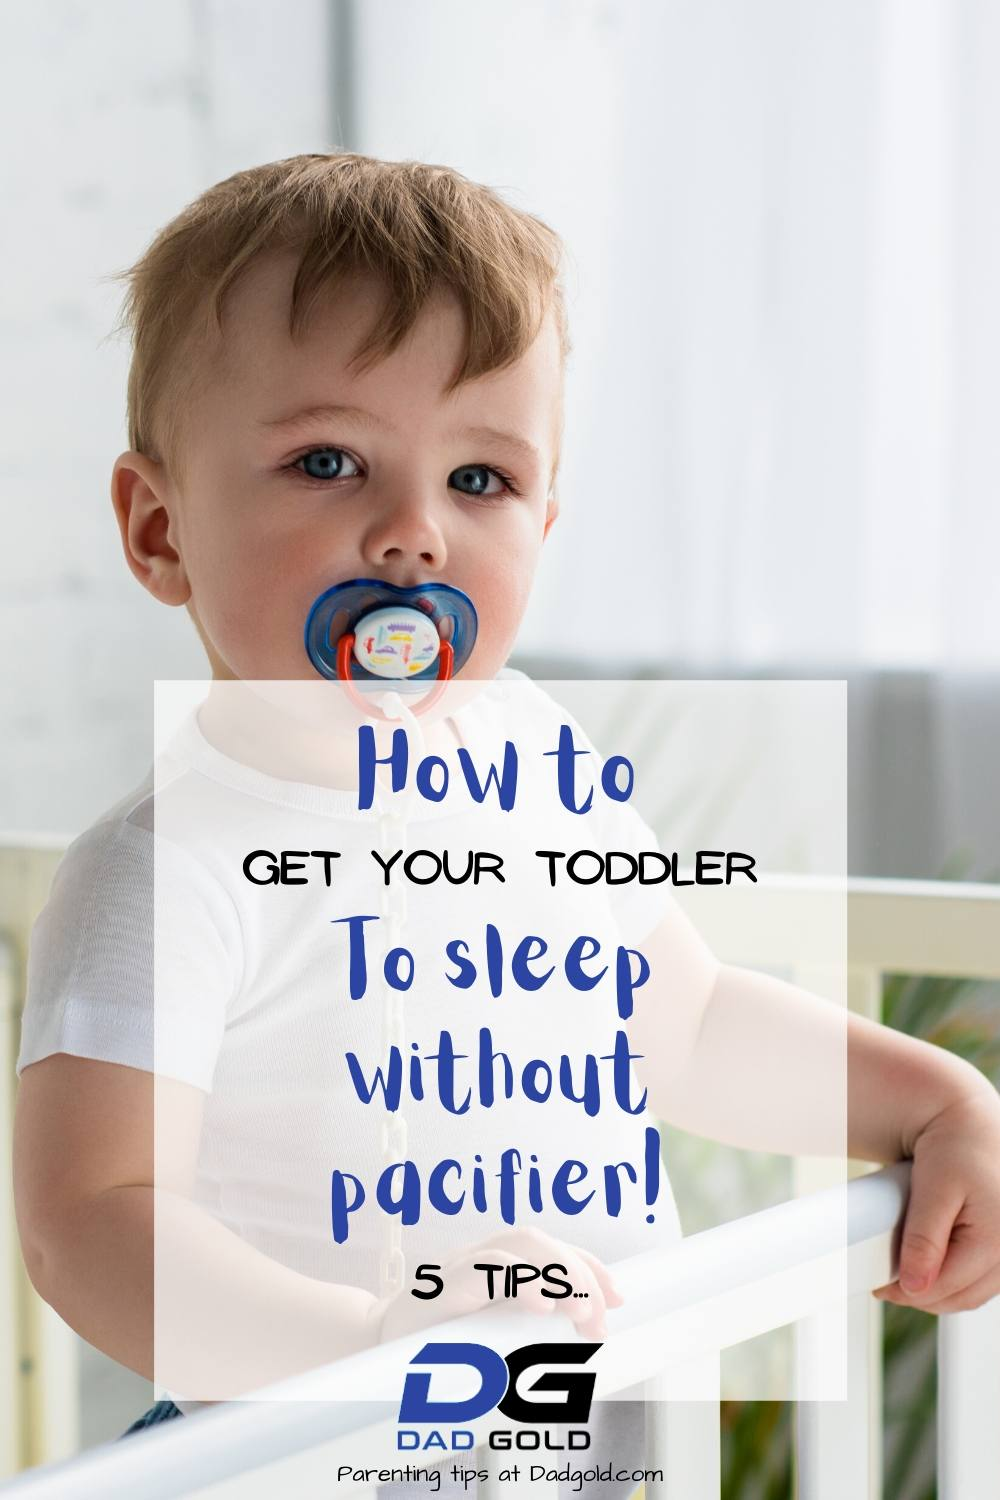 How To Get A Toddler To Sleep Without Pacifier